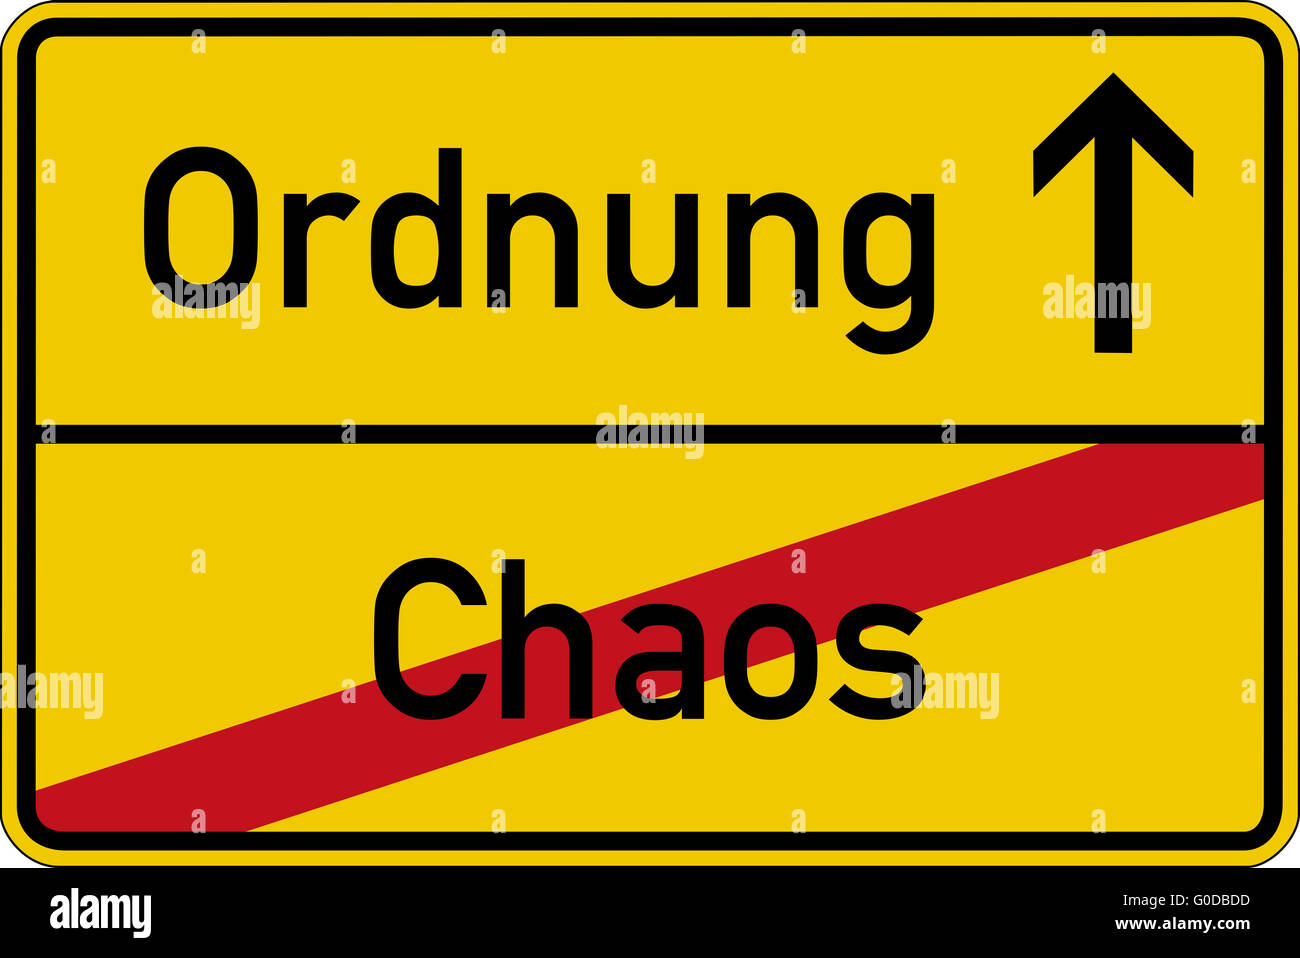 Chaos and order - Stock Image